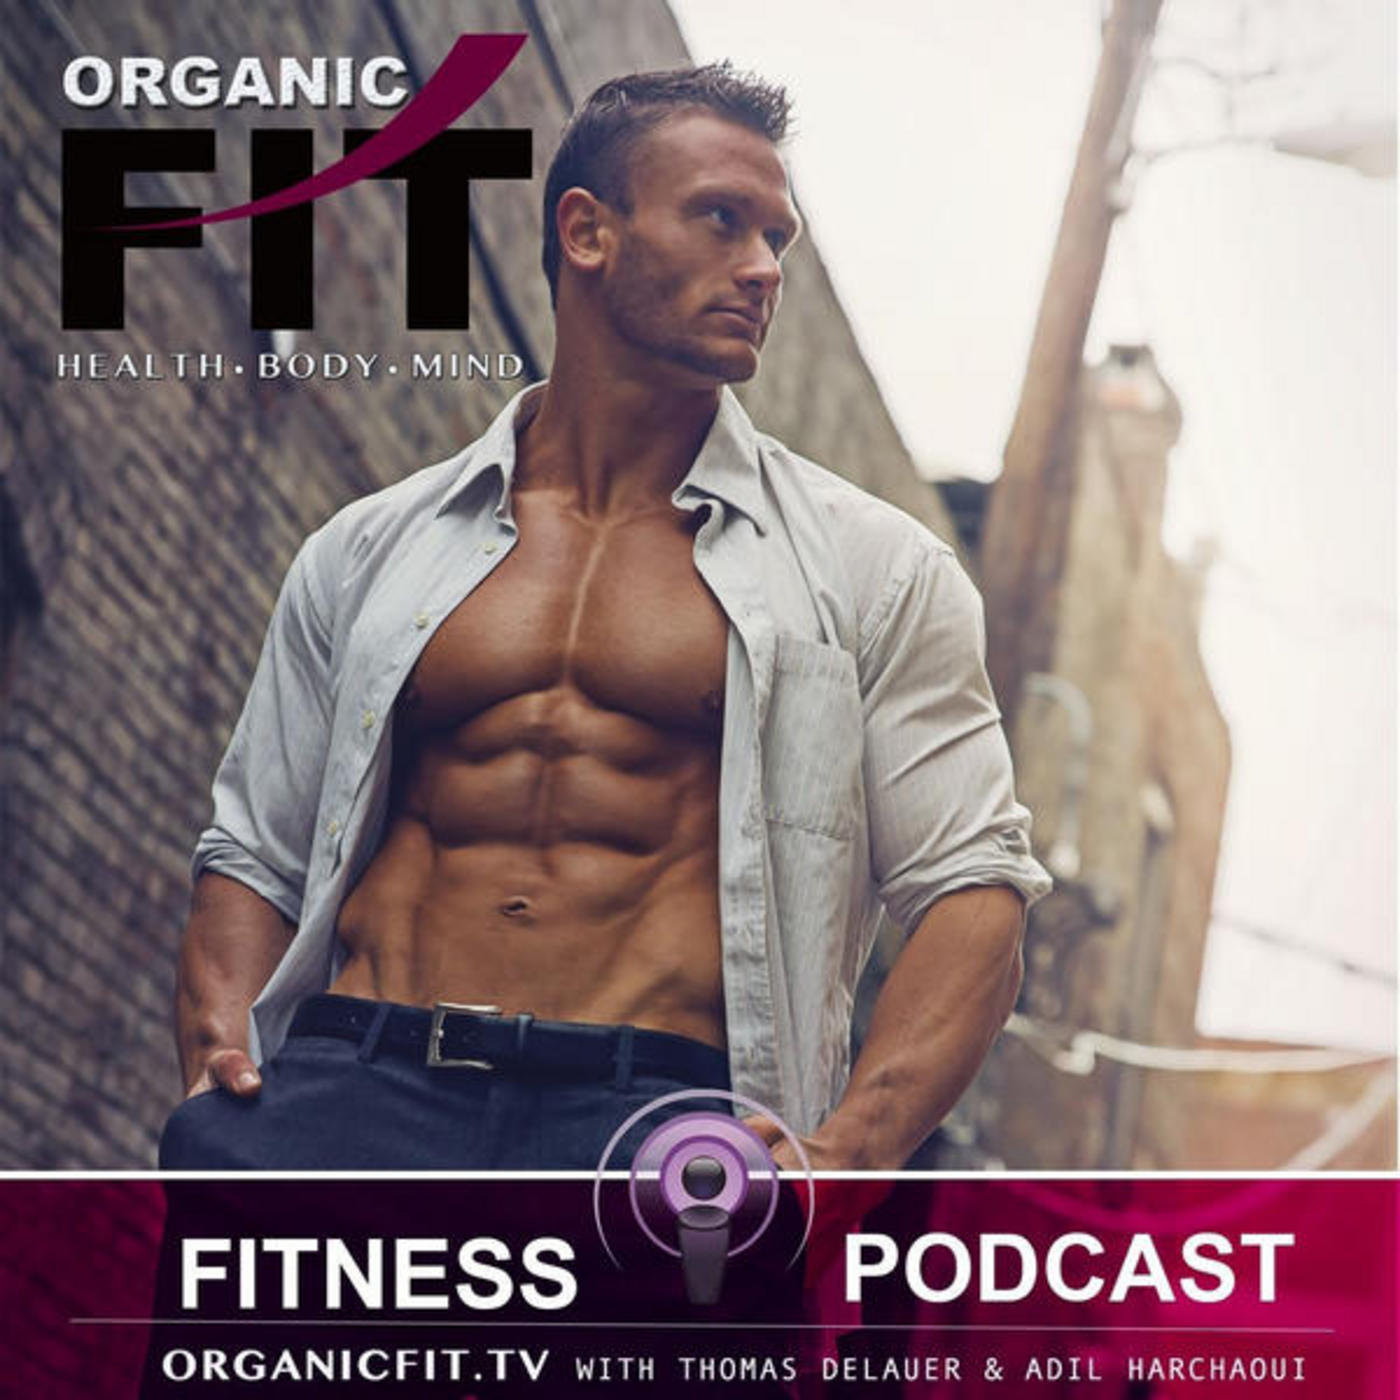 Session 2: The Difference Between Fasted Cardio and High Intensity Interval Training (HIIT) - Expert Thomas DeLauer